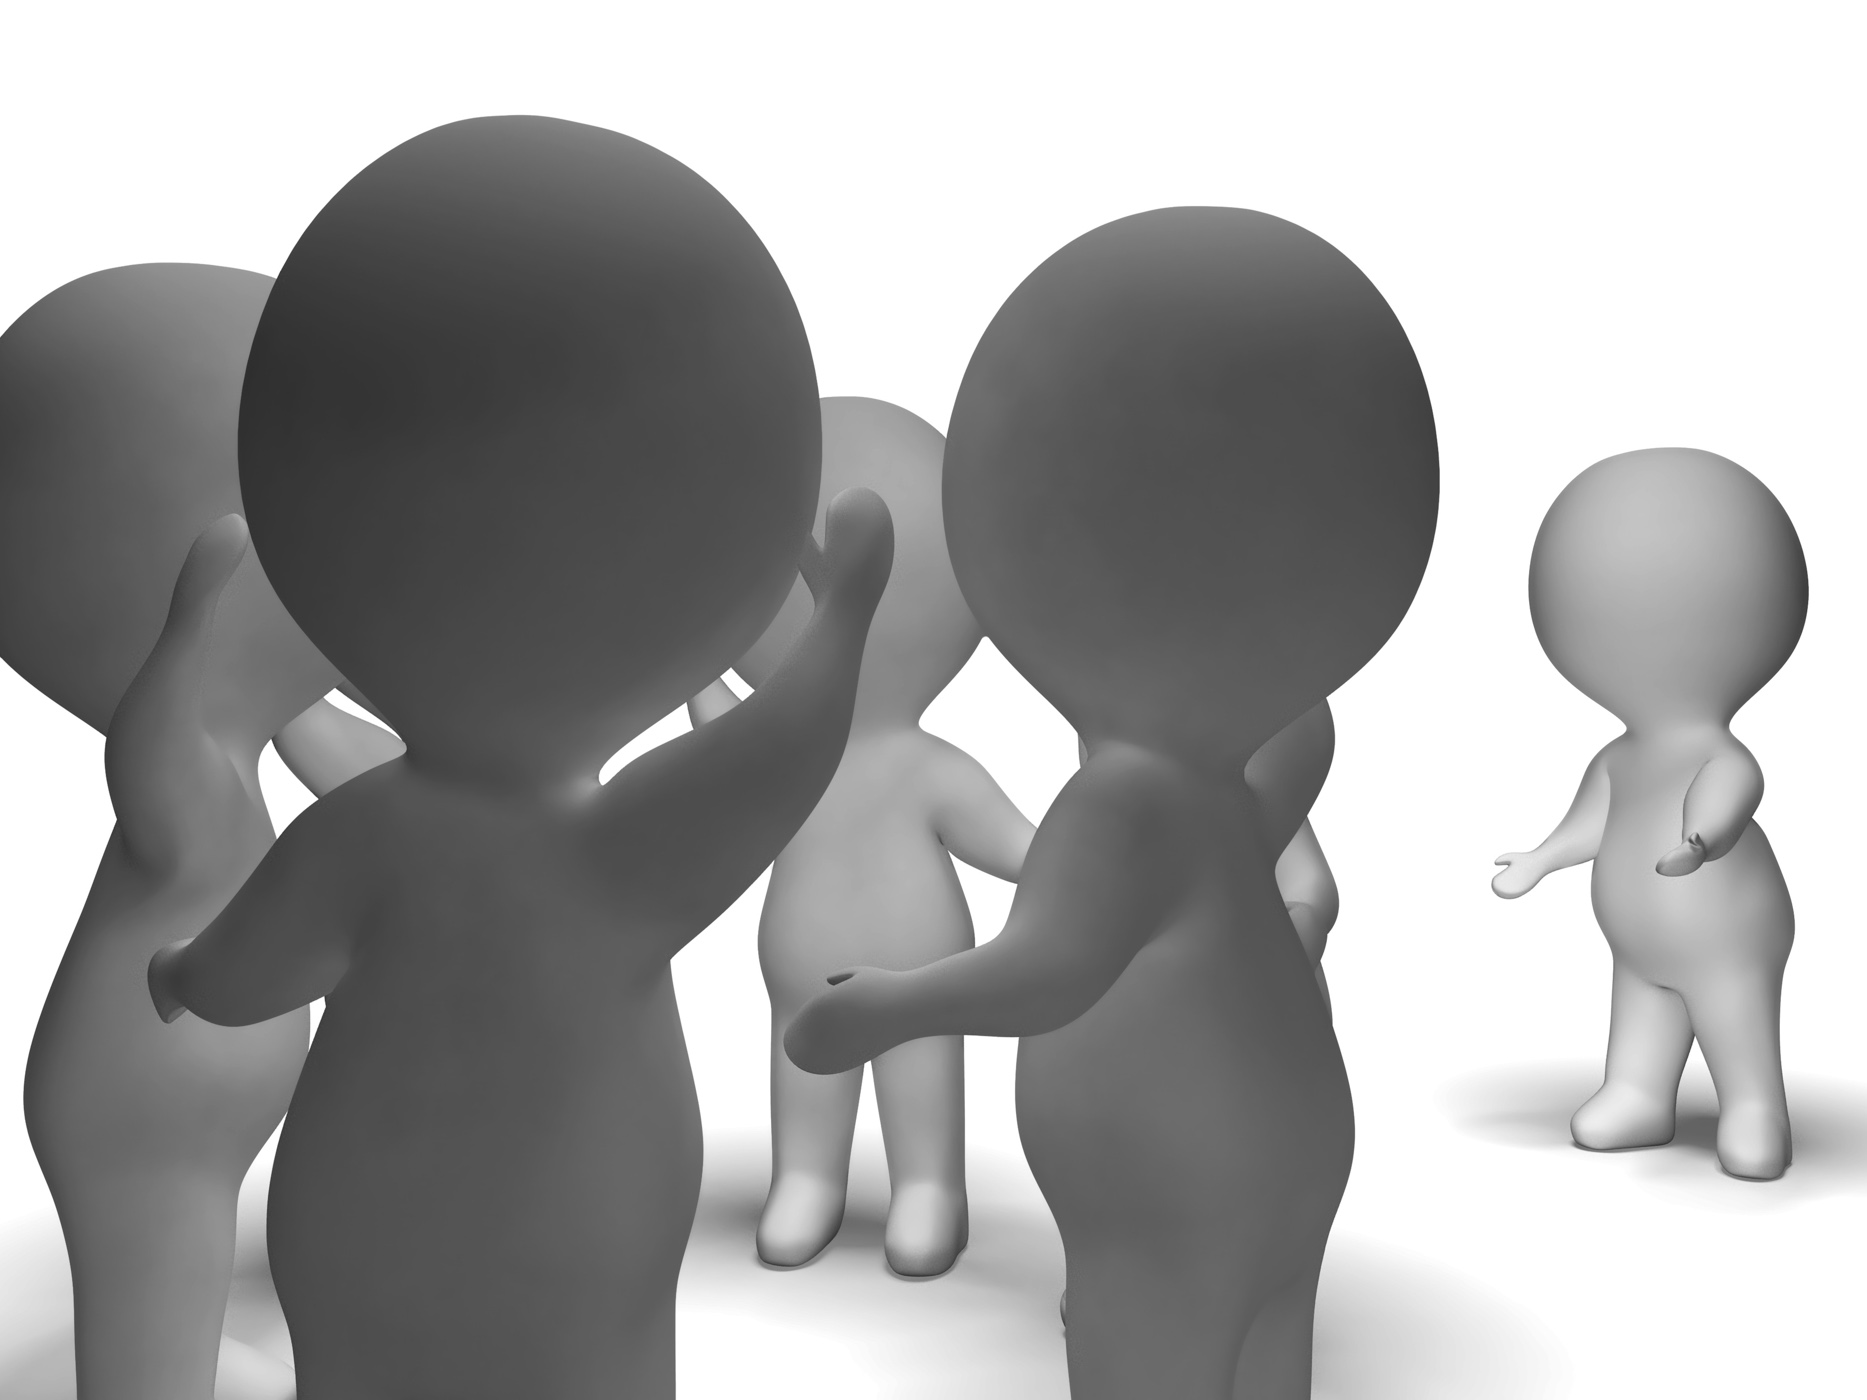 Excluded from group 3d character showing bullying photo